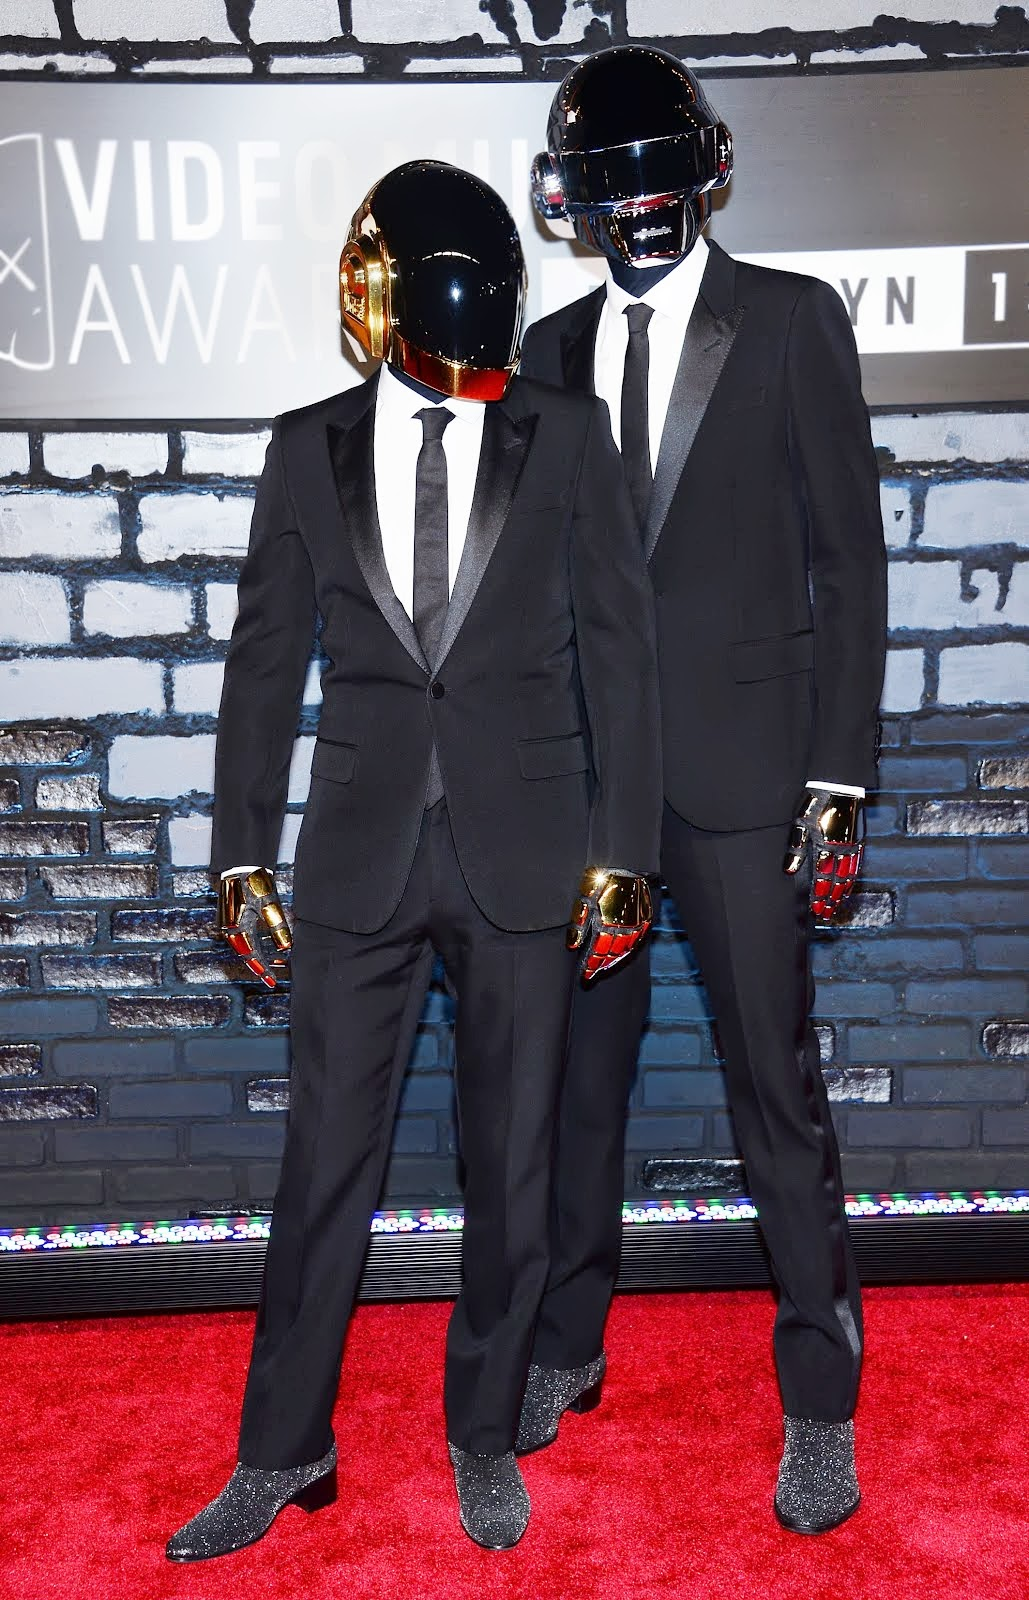 00O00 Menswear Blog: Daft Punk in Saint Laurent - 2013 MTV Video Music Awards